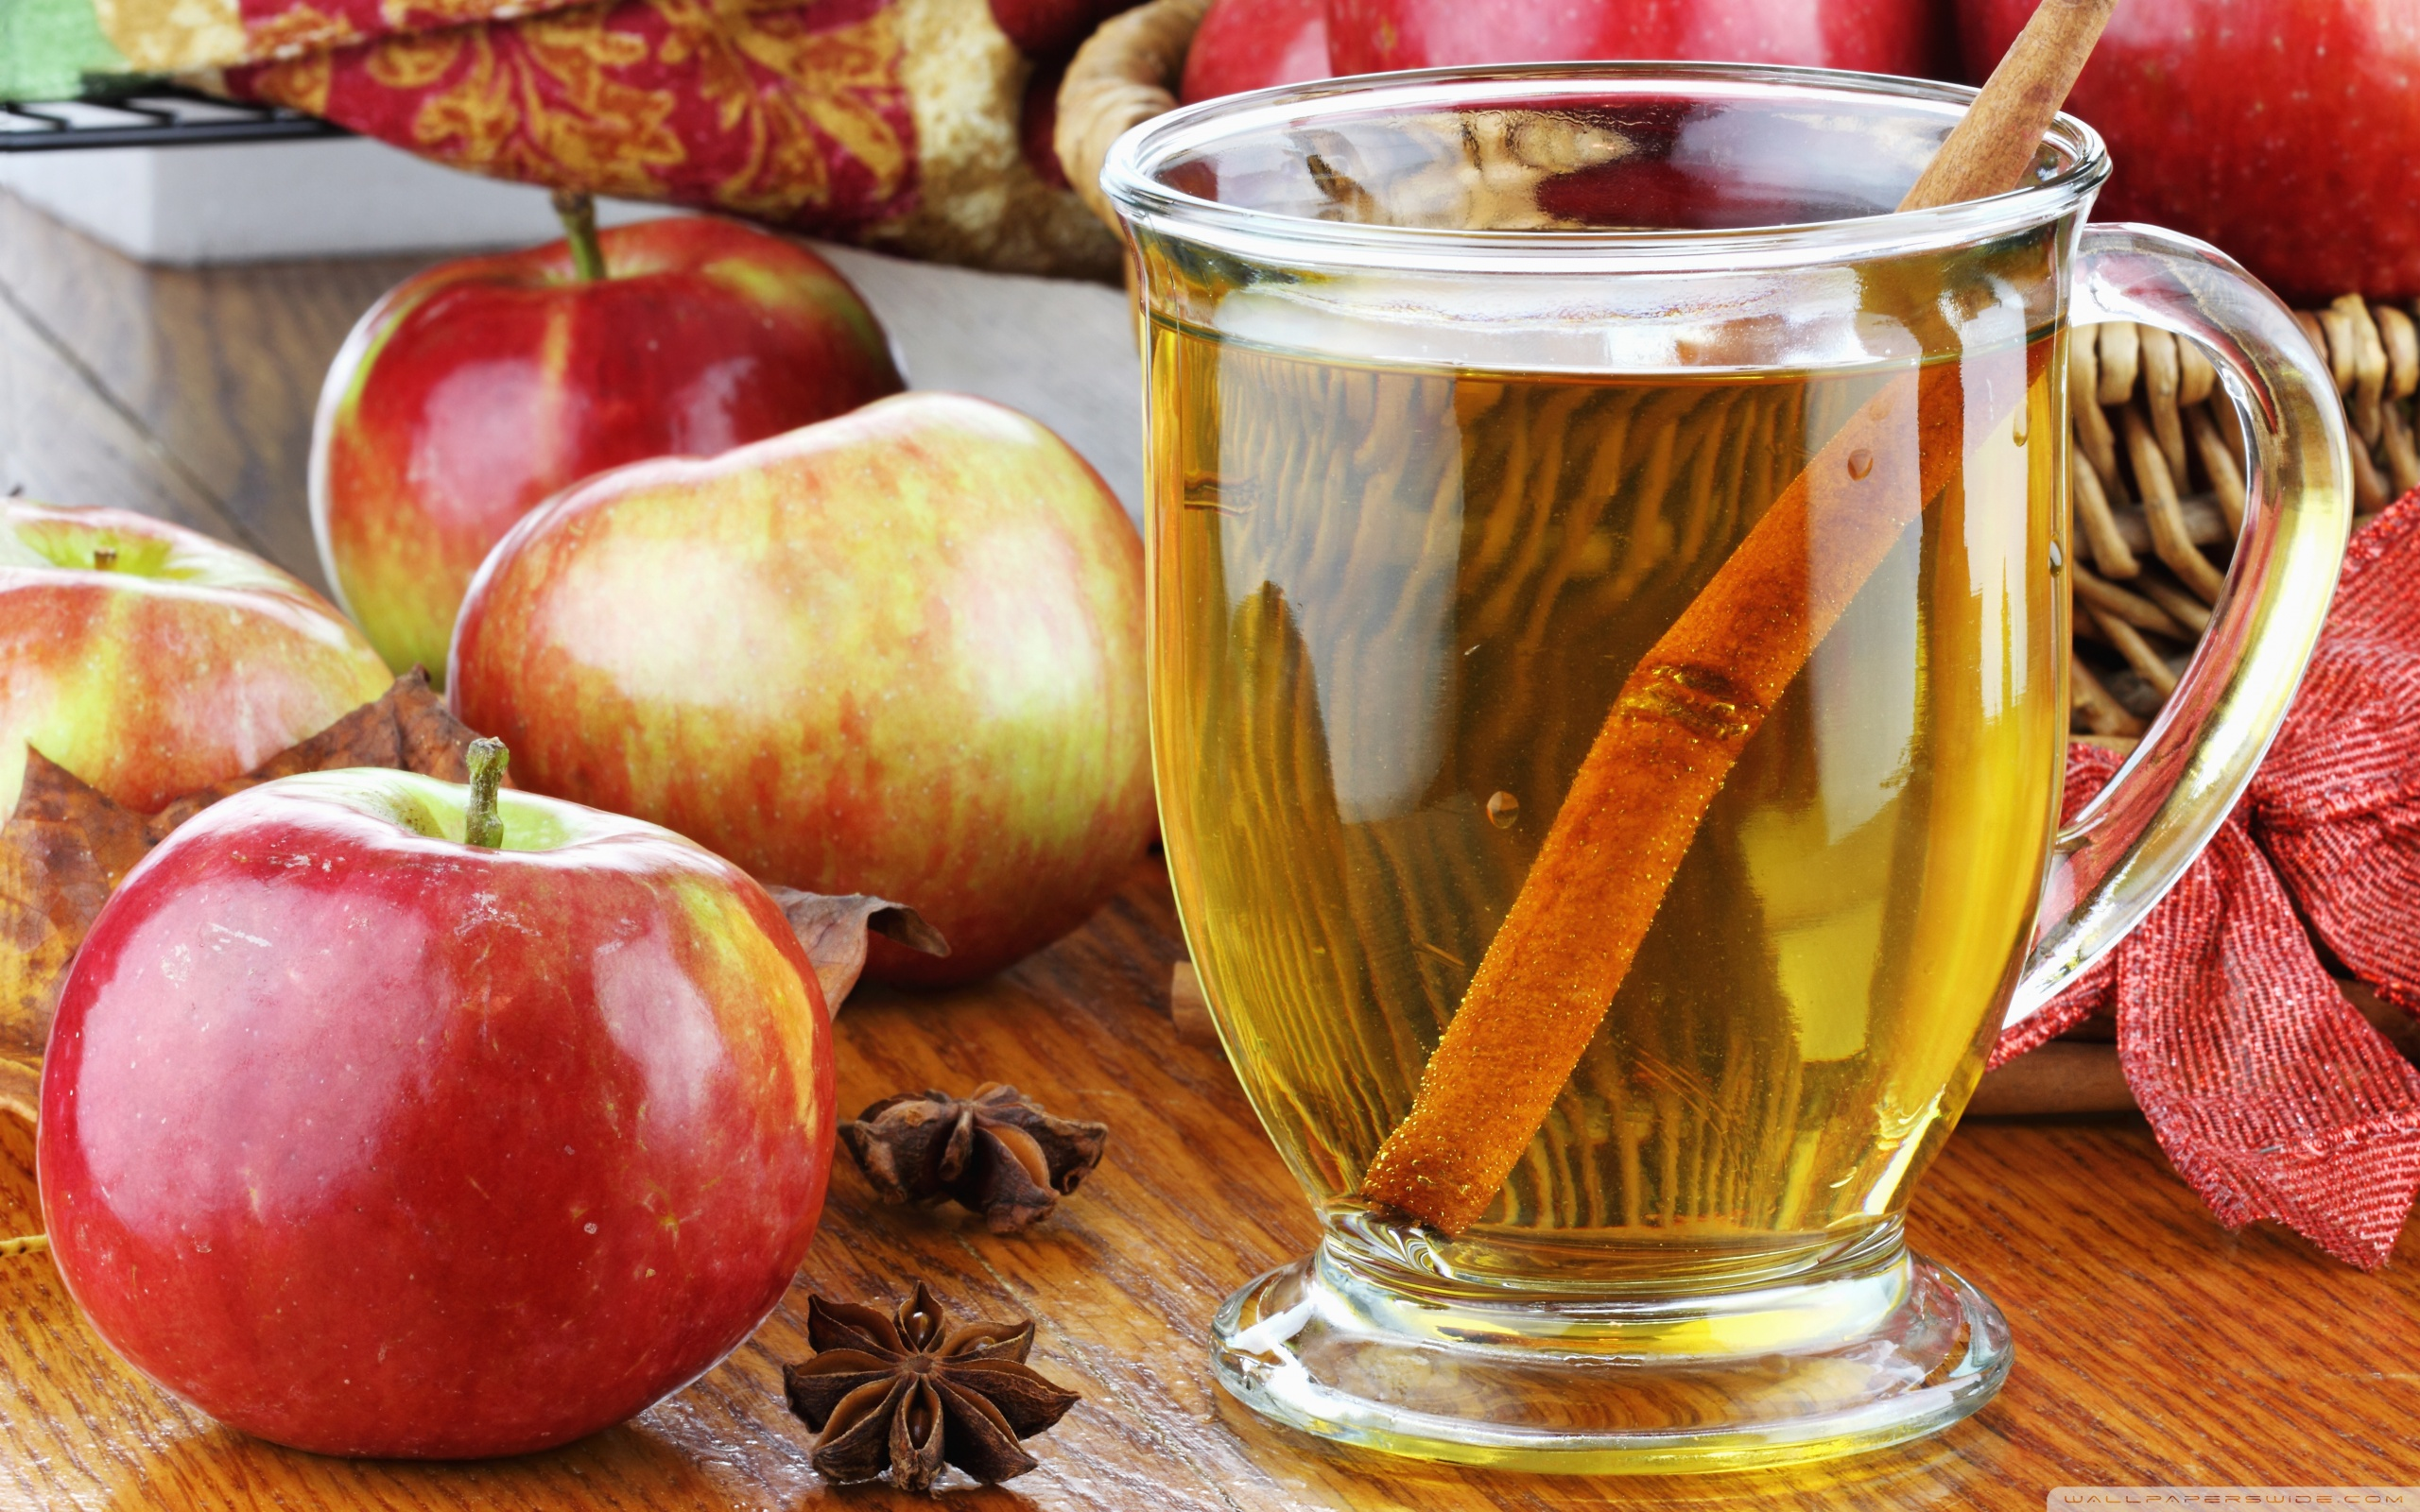 Apple Juice Wallpaper   HQ Wallpapers download 100 high quality 2560x1600